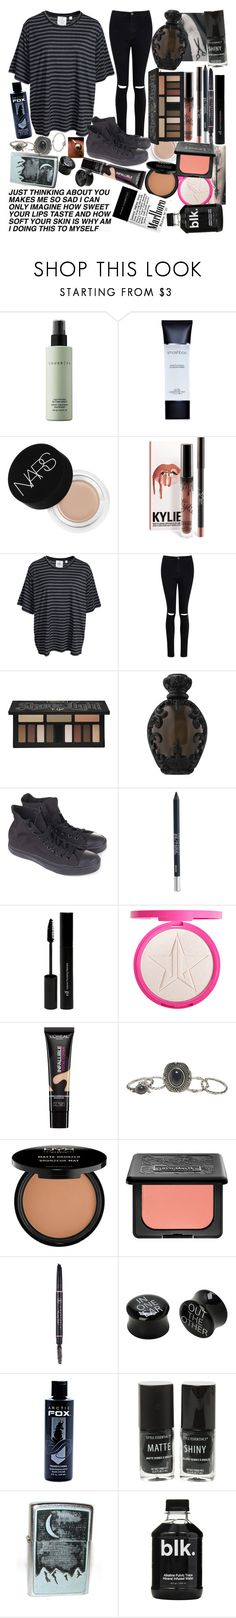 """O-M- G (read D)// I'm just the worst kind, of guy to argue, with what you might find. And for the last night I lie… could I lie with you?"" by thelyricsmatter ❤ liked on Polyvore featuring Cover FX, Smashbox, NARS Cosmetics, Cheap Monday, Boohoo, Kat Von D, Converse, Urban Decay, e.l.f. and L'Oréal Paris"